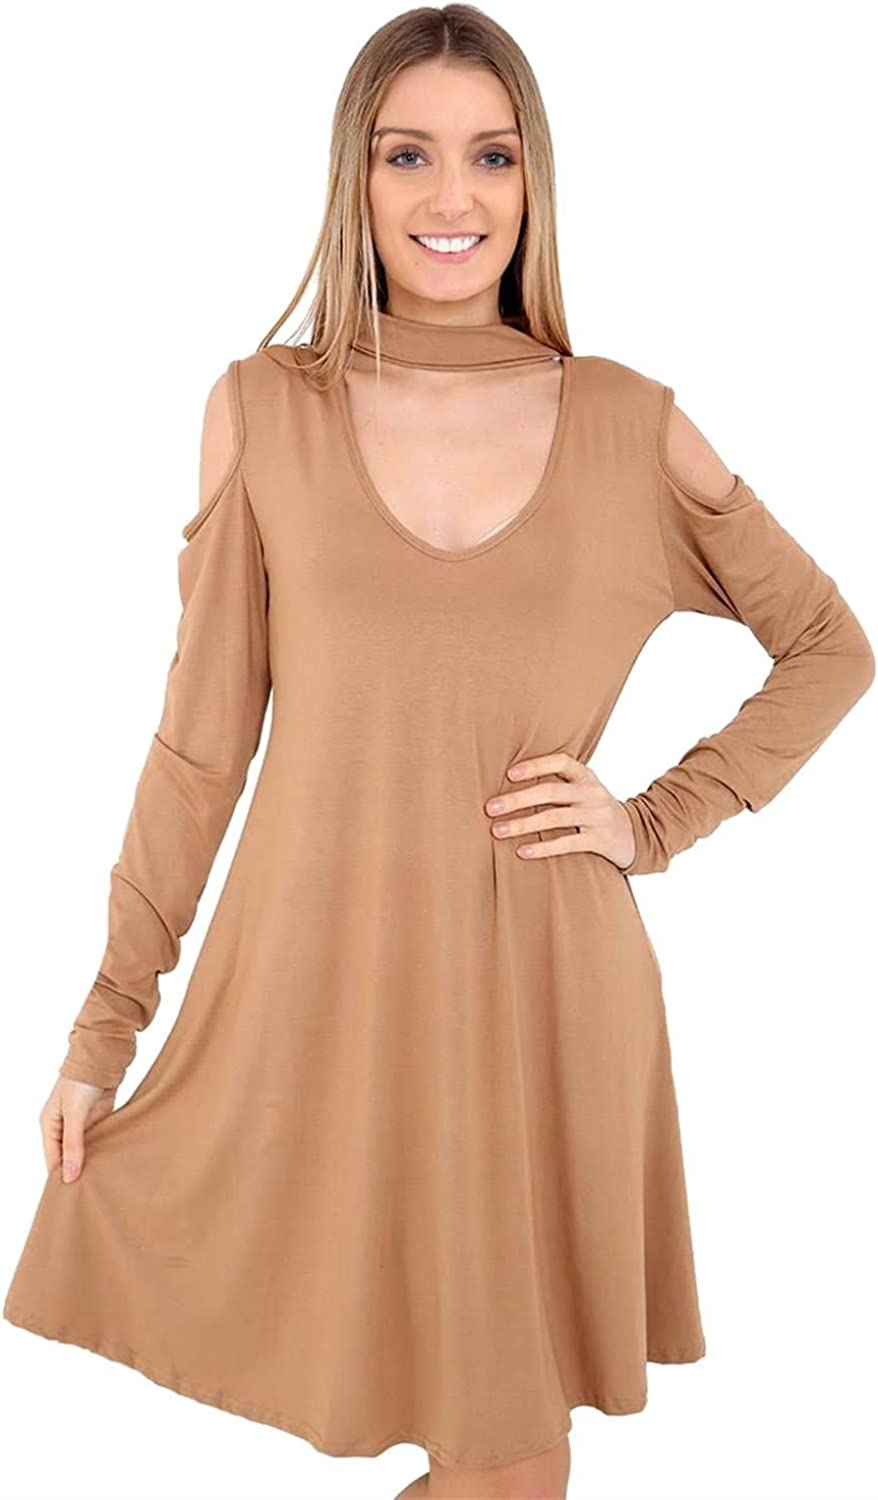 New Ladies Plain Choker Neck Cold Cut Out Shoulder Flared Swing Dress Top 8-26